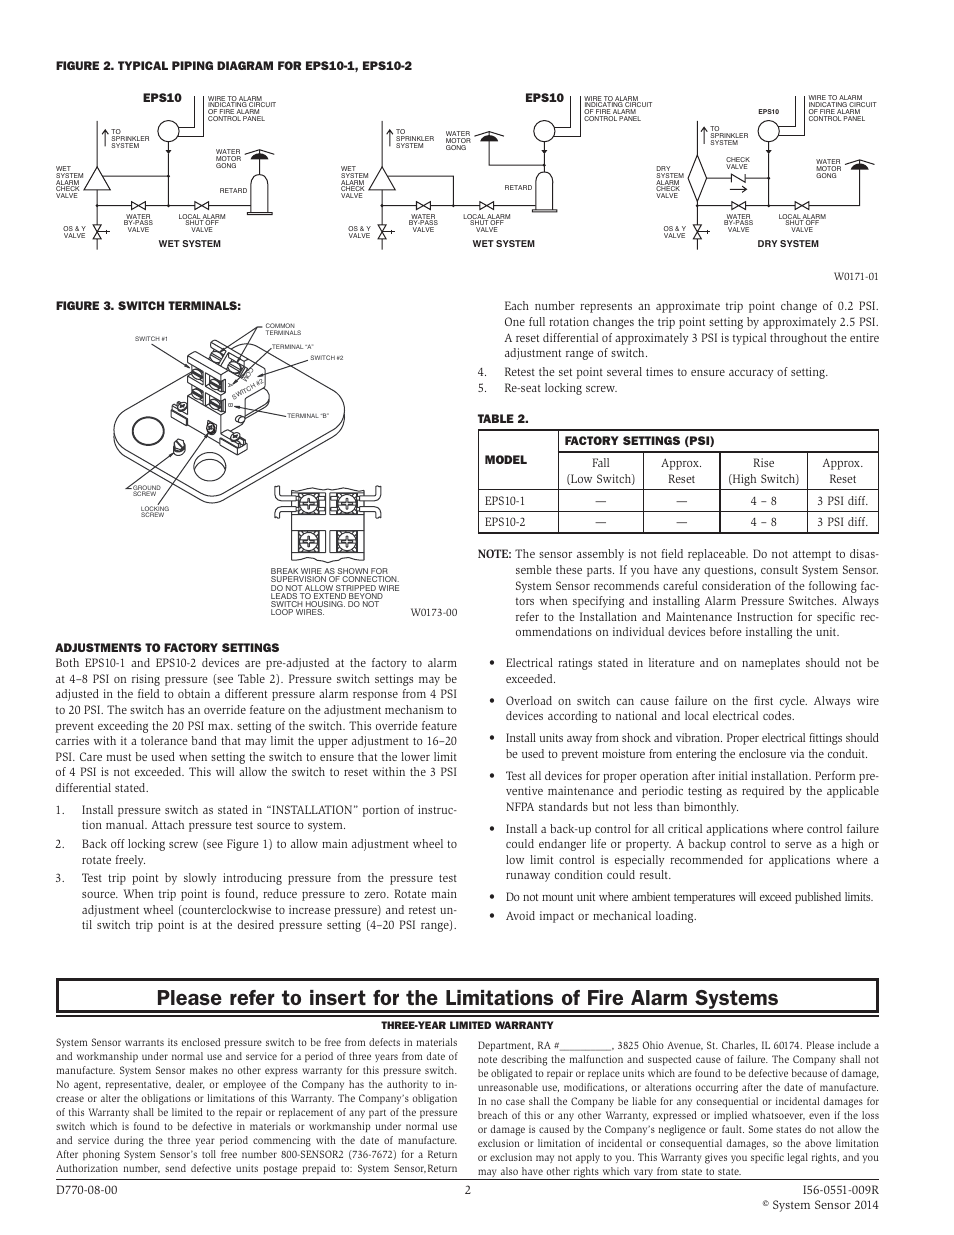 system sensor eps10 1 and eps10 2 page2 figure 3 switch terminals, eps10 system sensor eps10 1 and 5R55E Transmission Wiring Diagram at panicattacktreatment.co